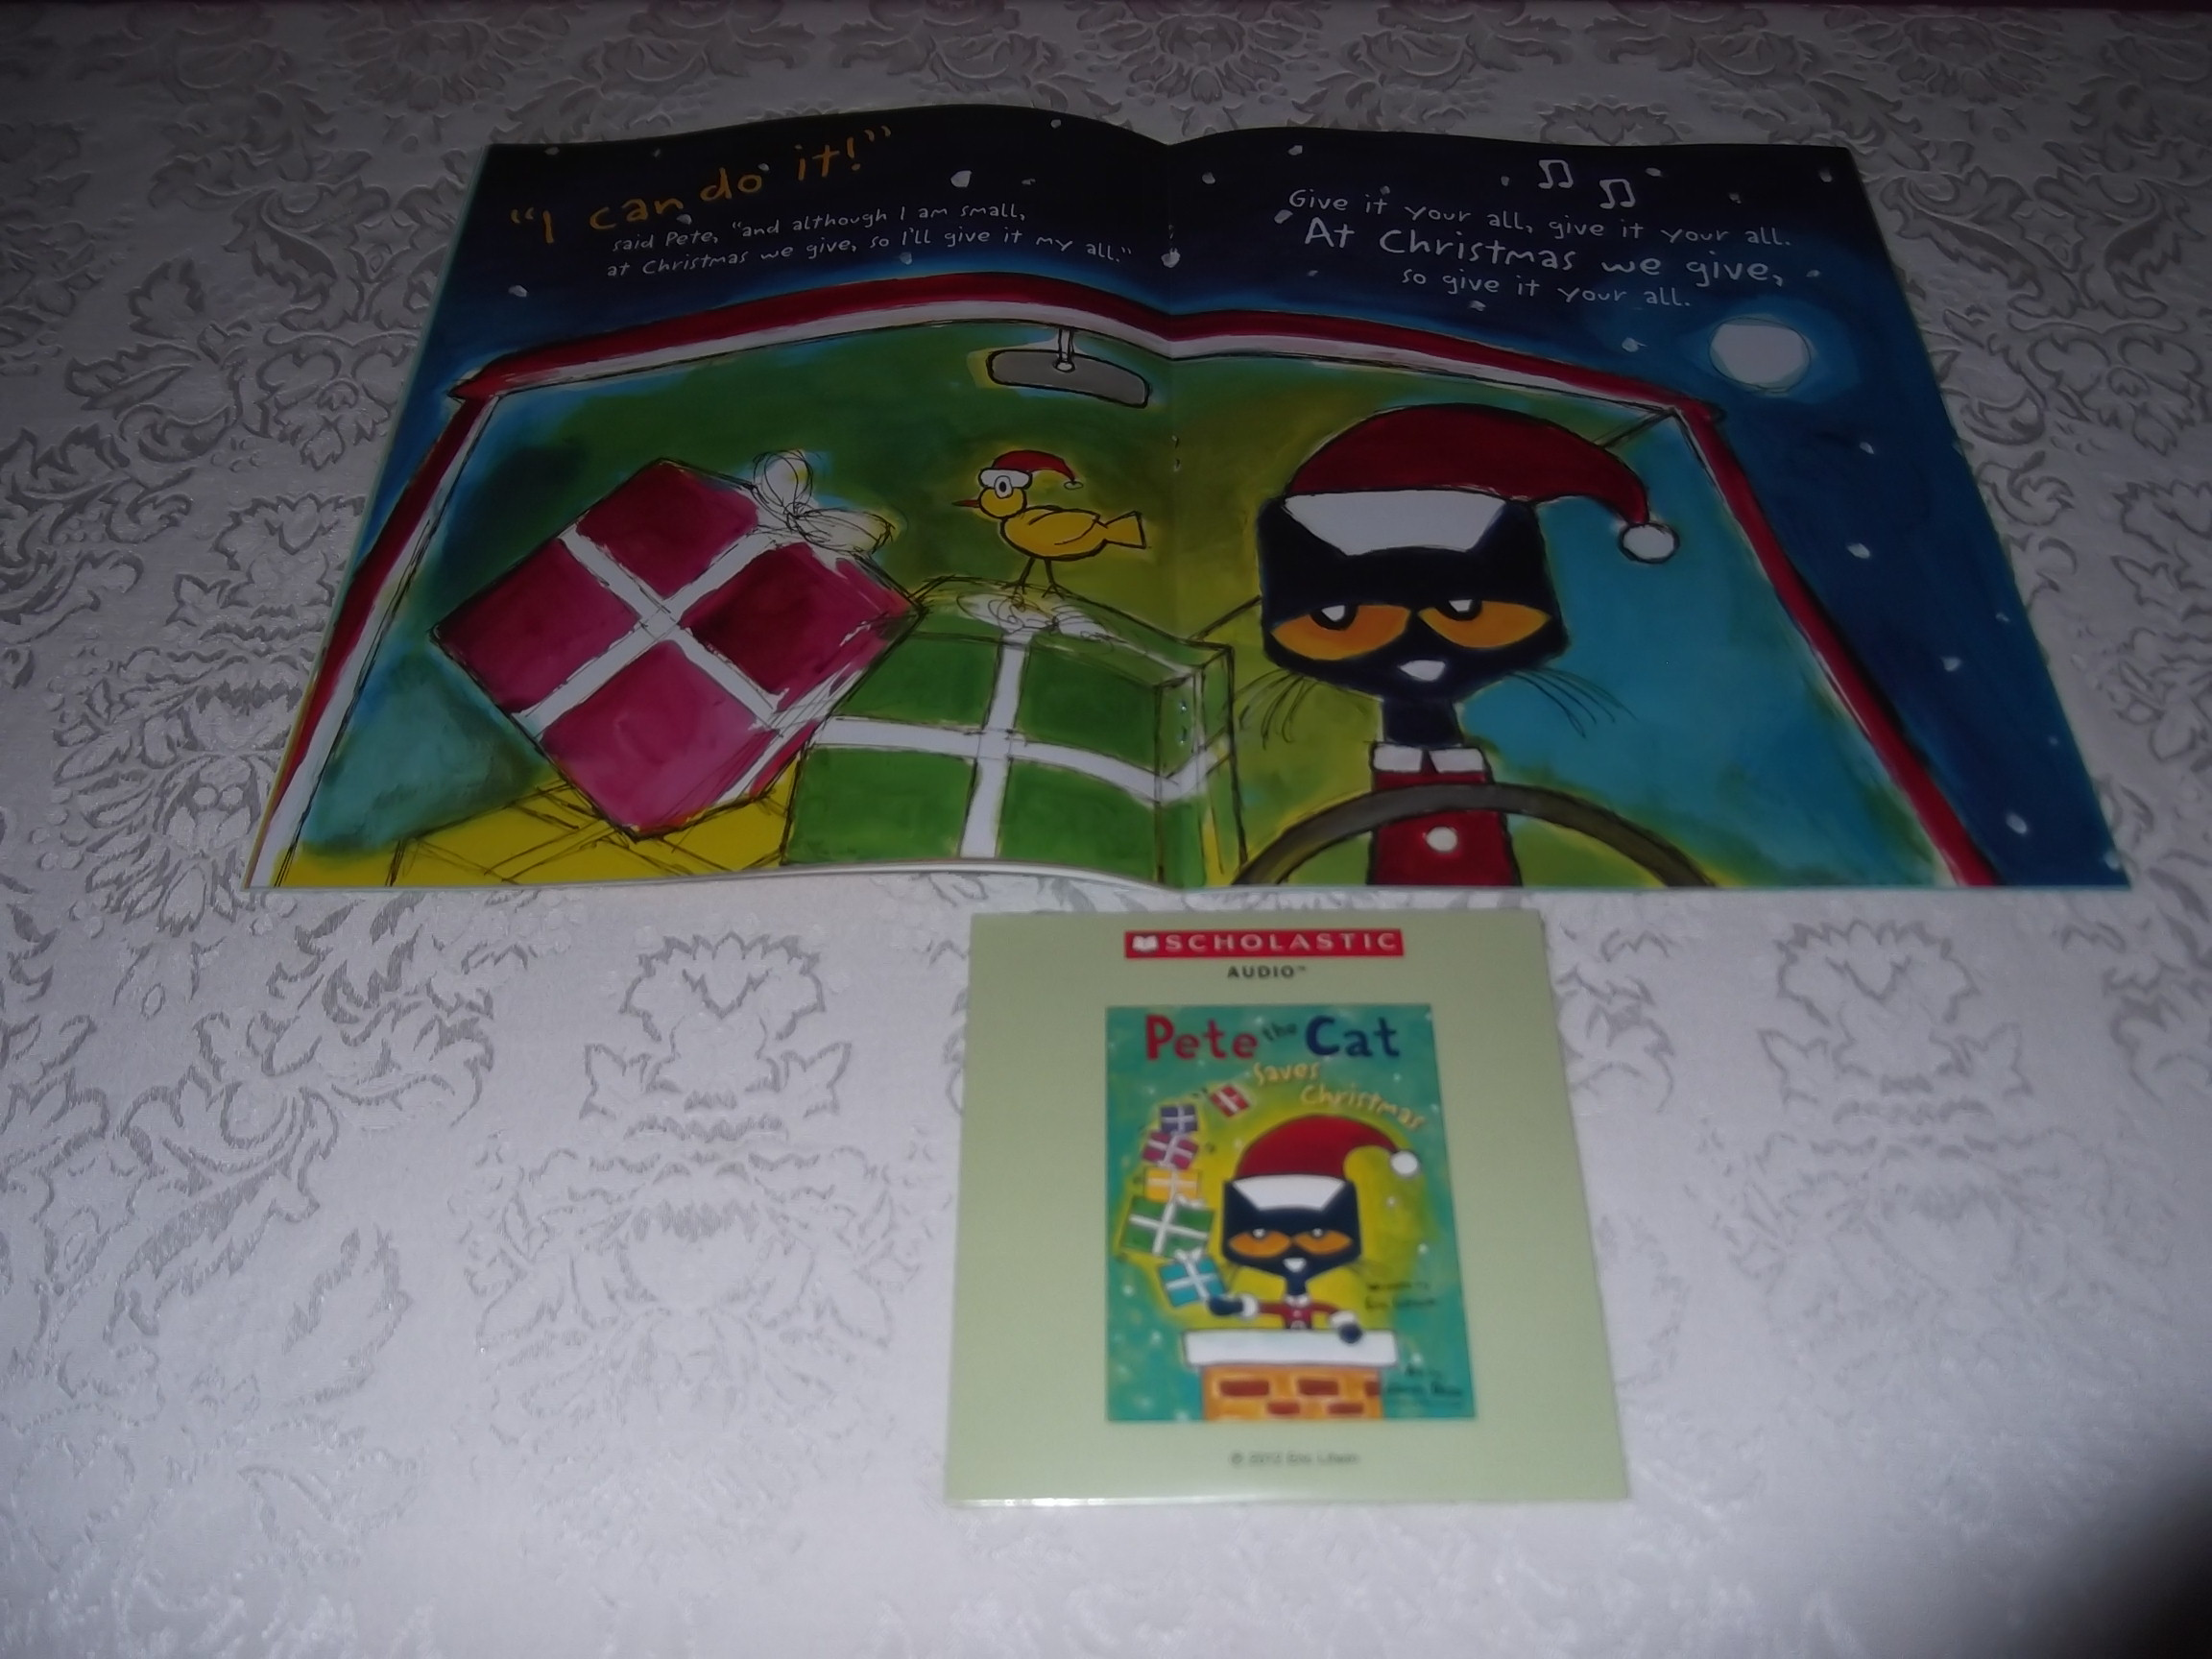 Pete The Cat Saves Christmas.Pete The Cat Saves Christmas Brand New Audio Cd And Sc Eric Litwin